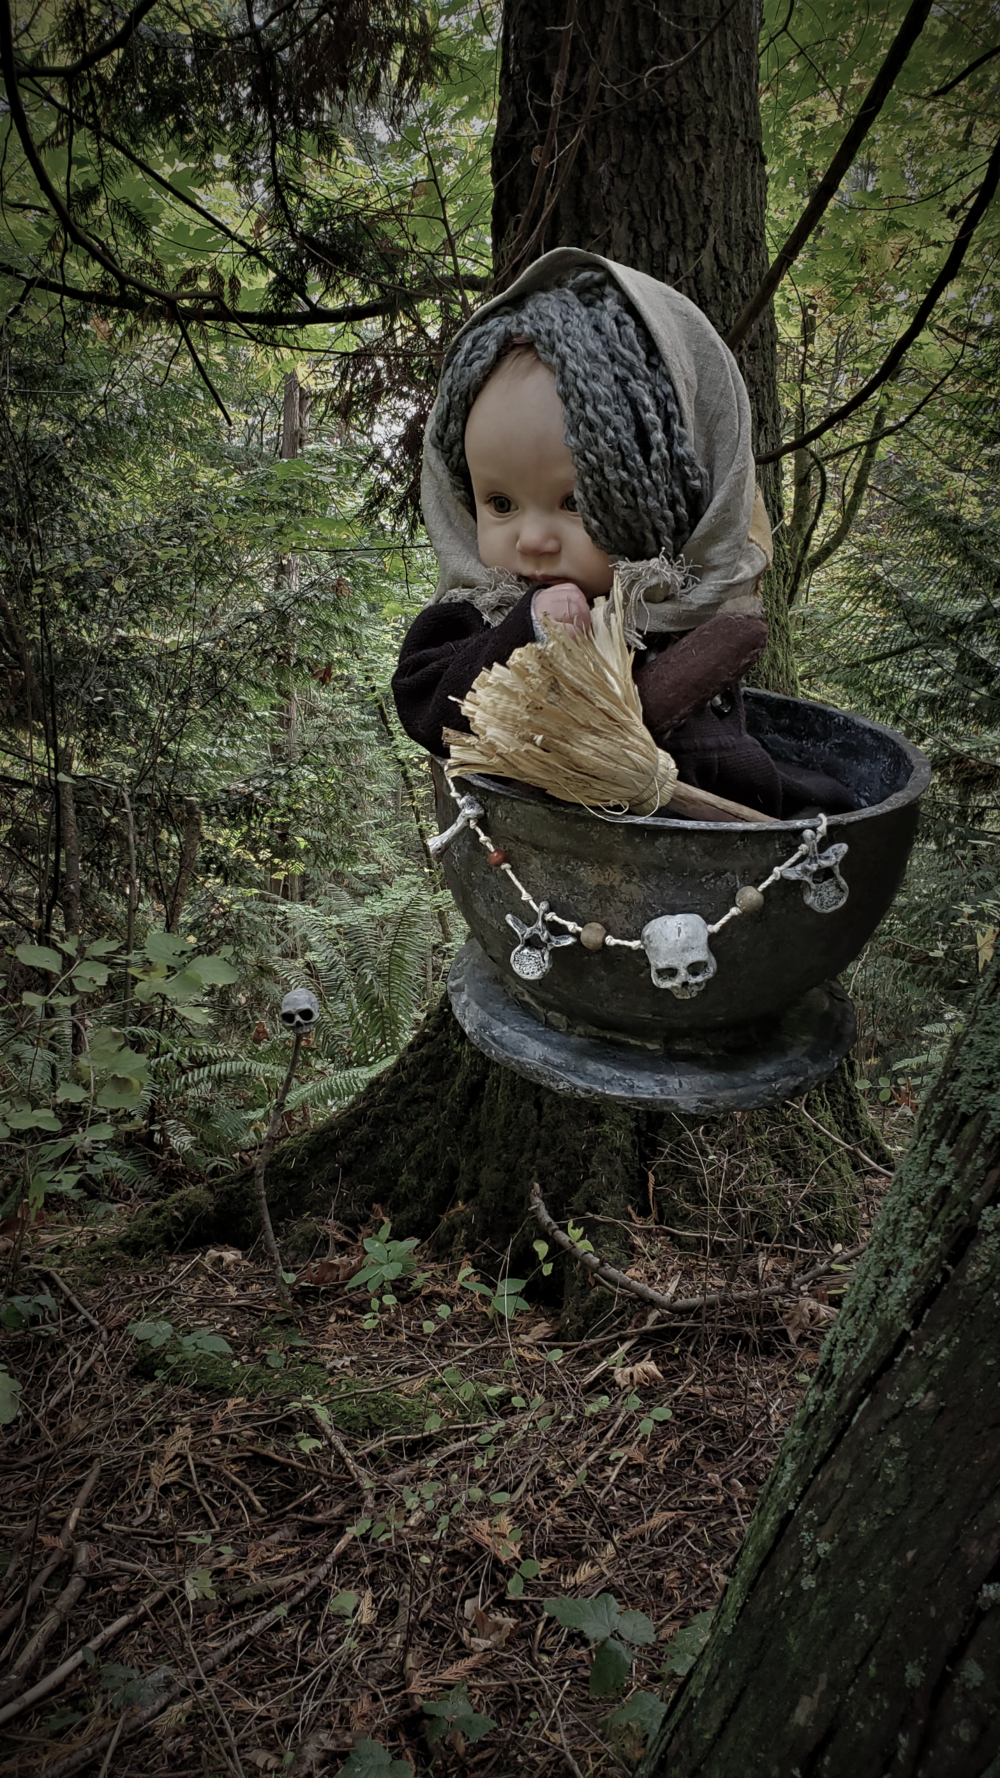 Baby baba yaga flying through the woods in her mortar holding a broom